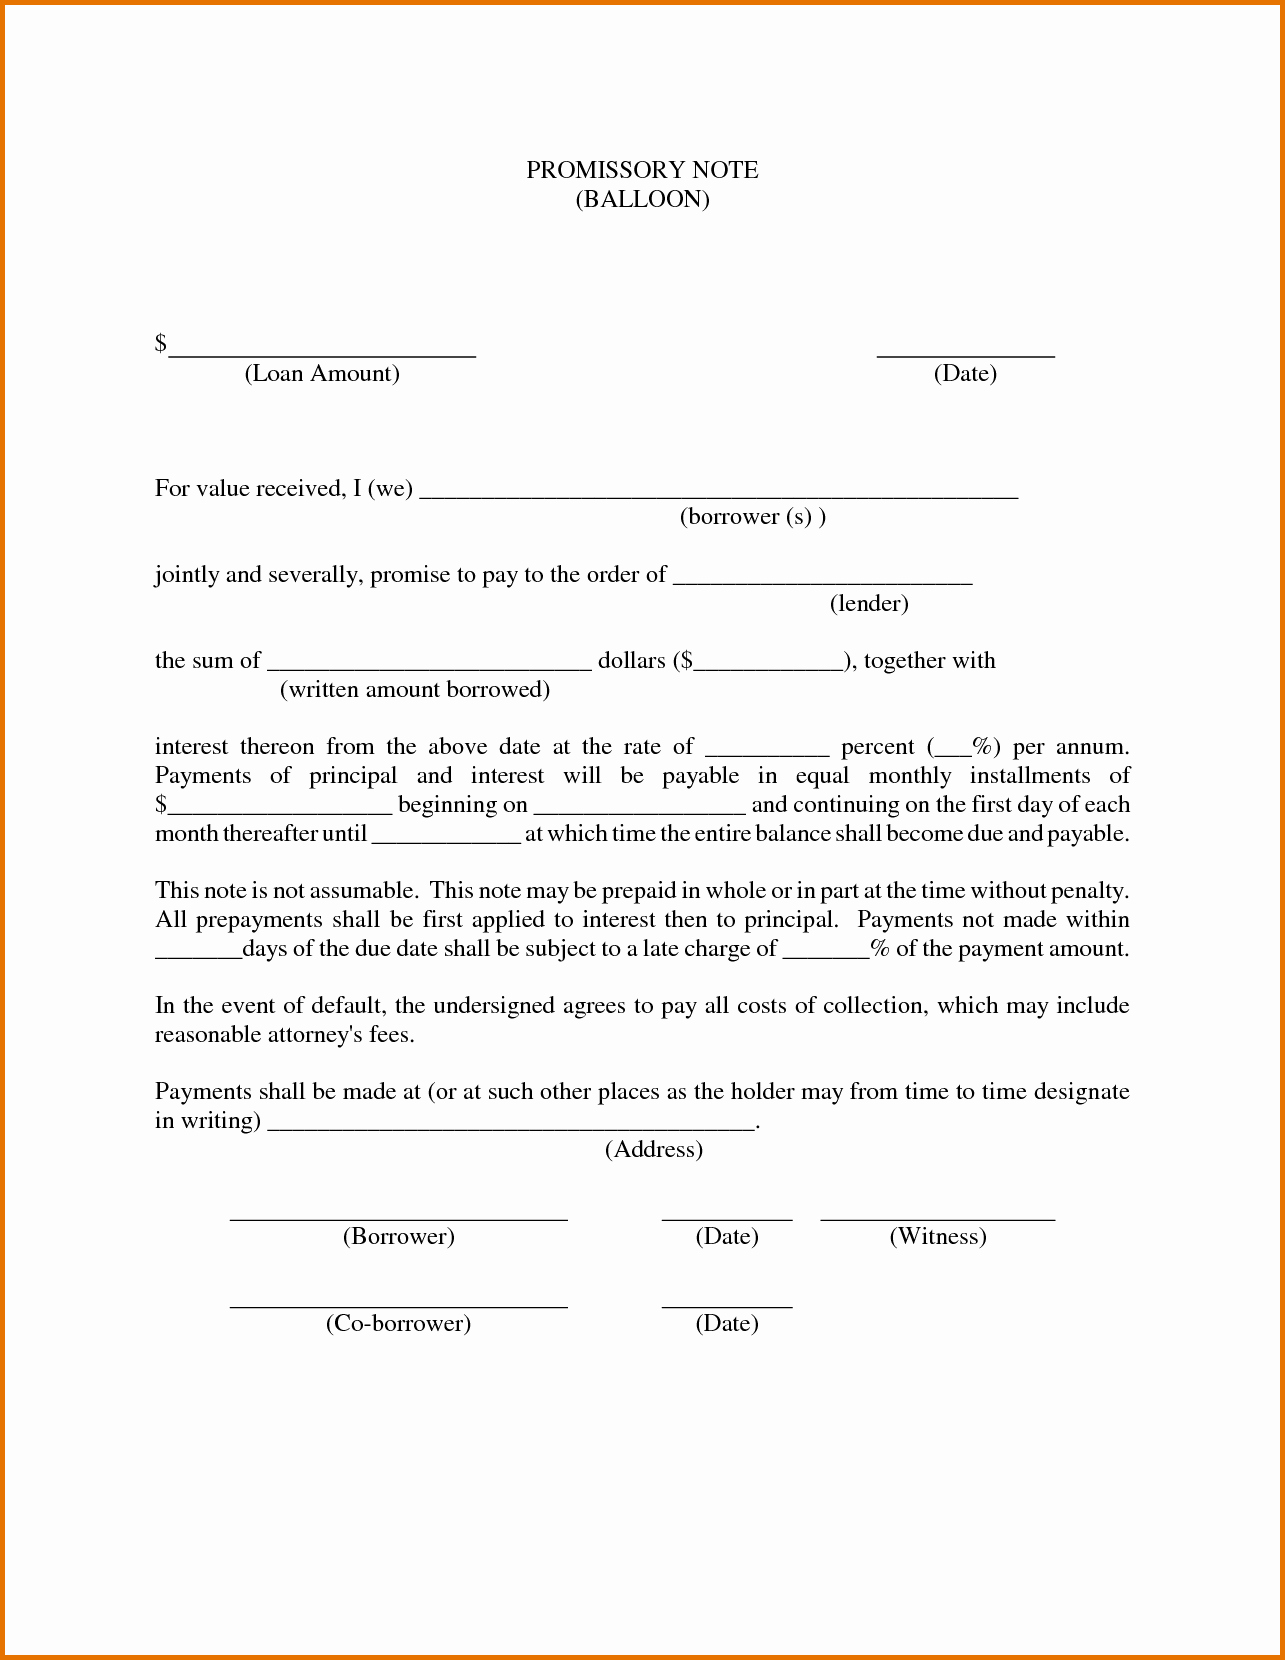 Personal Loan Promissory Note Template Awesome Promissory Note Free Download Portablegasgrillweber